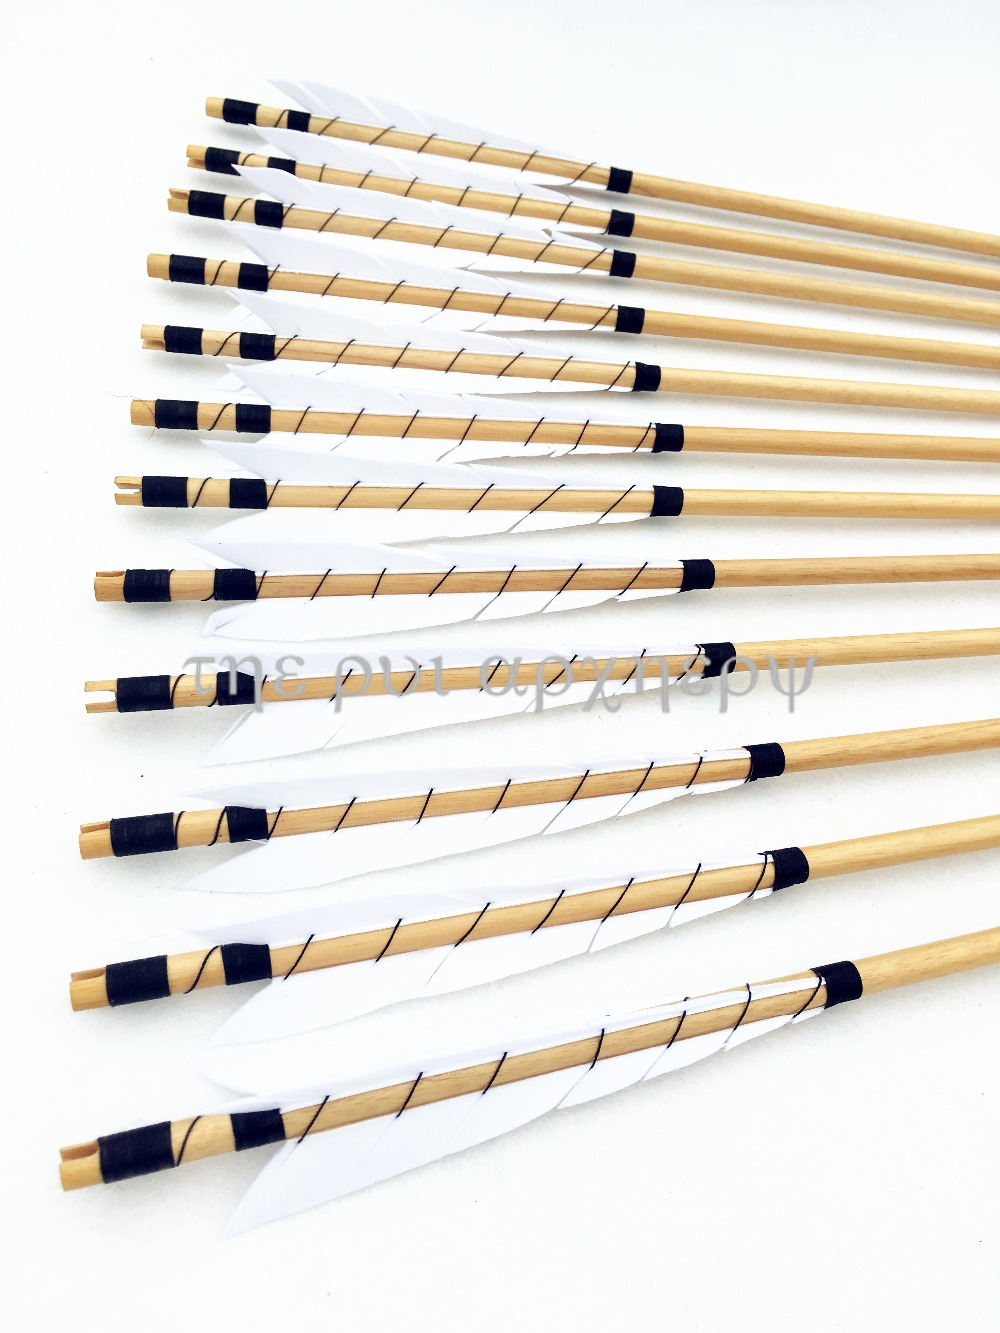 6/12/24pcs 32inch Handmade Turkey Feathers Wood Target Arrows With Bullet Tips